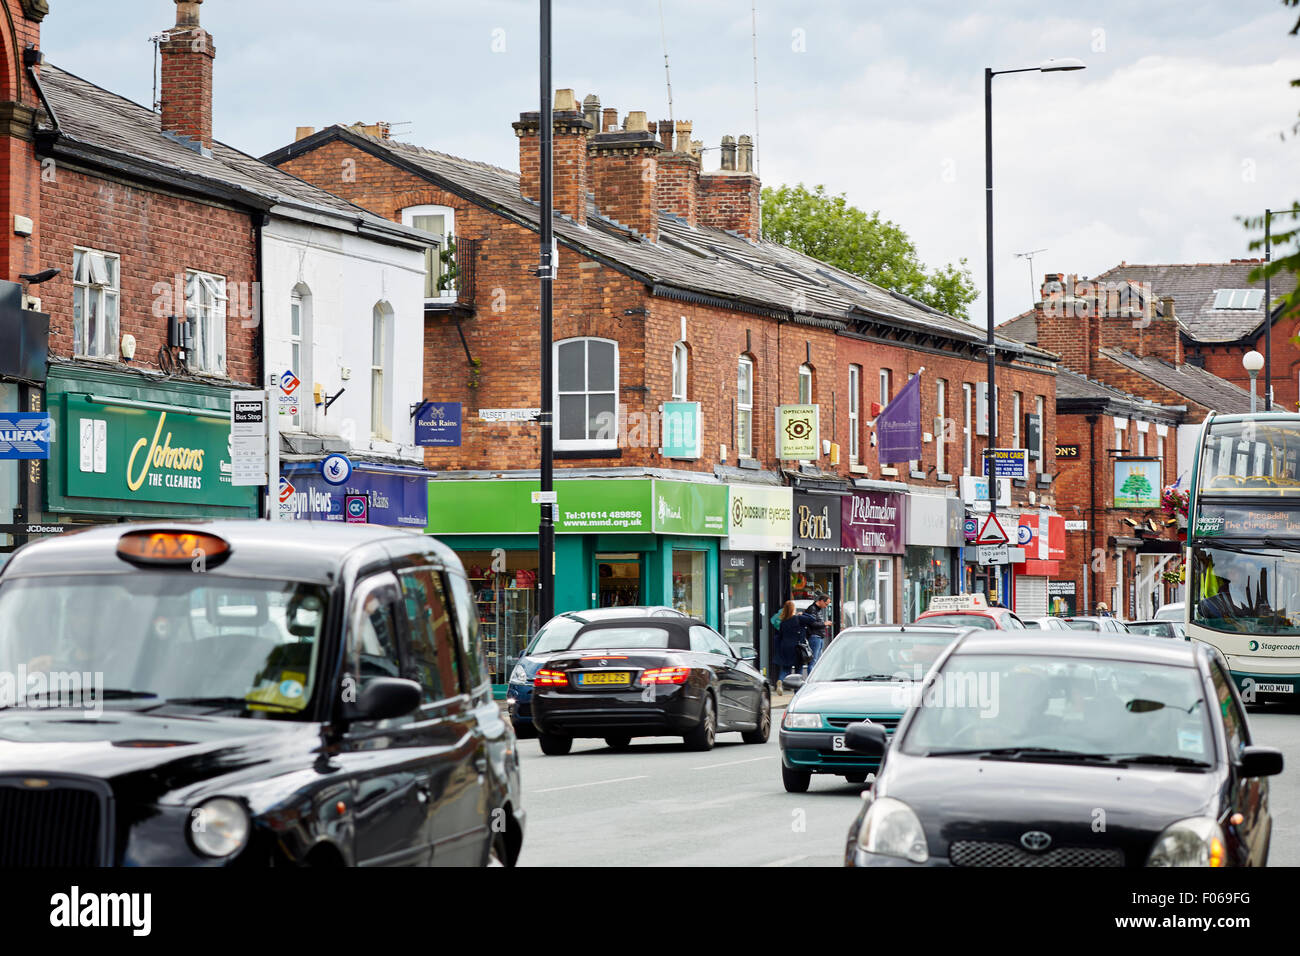 Didsbury Village South Manchester   Shops shopping shopper store retail supermarket retailer retailers independent - Stock Image